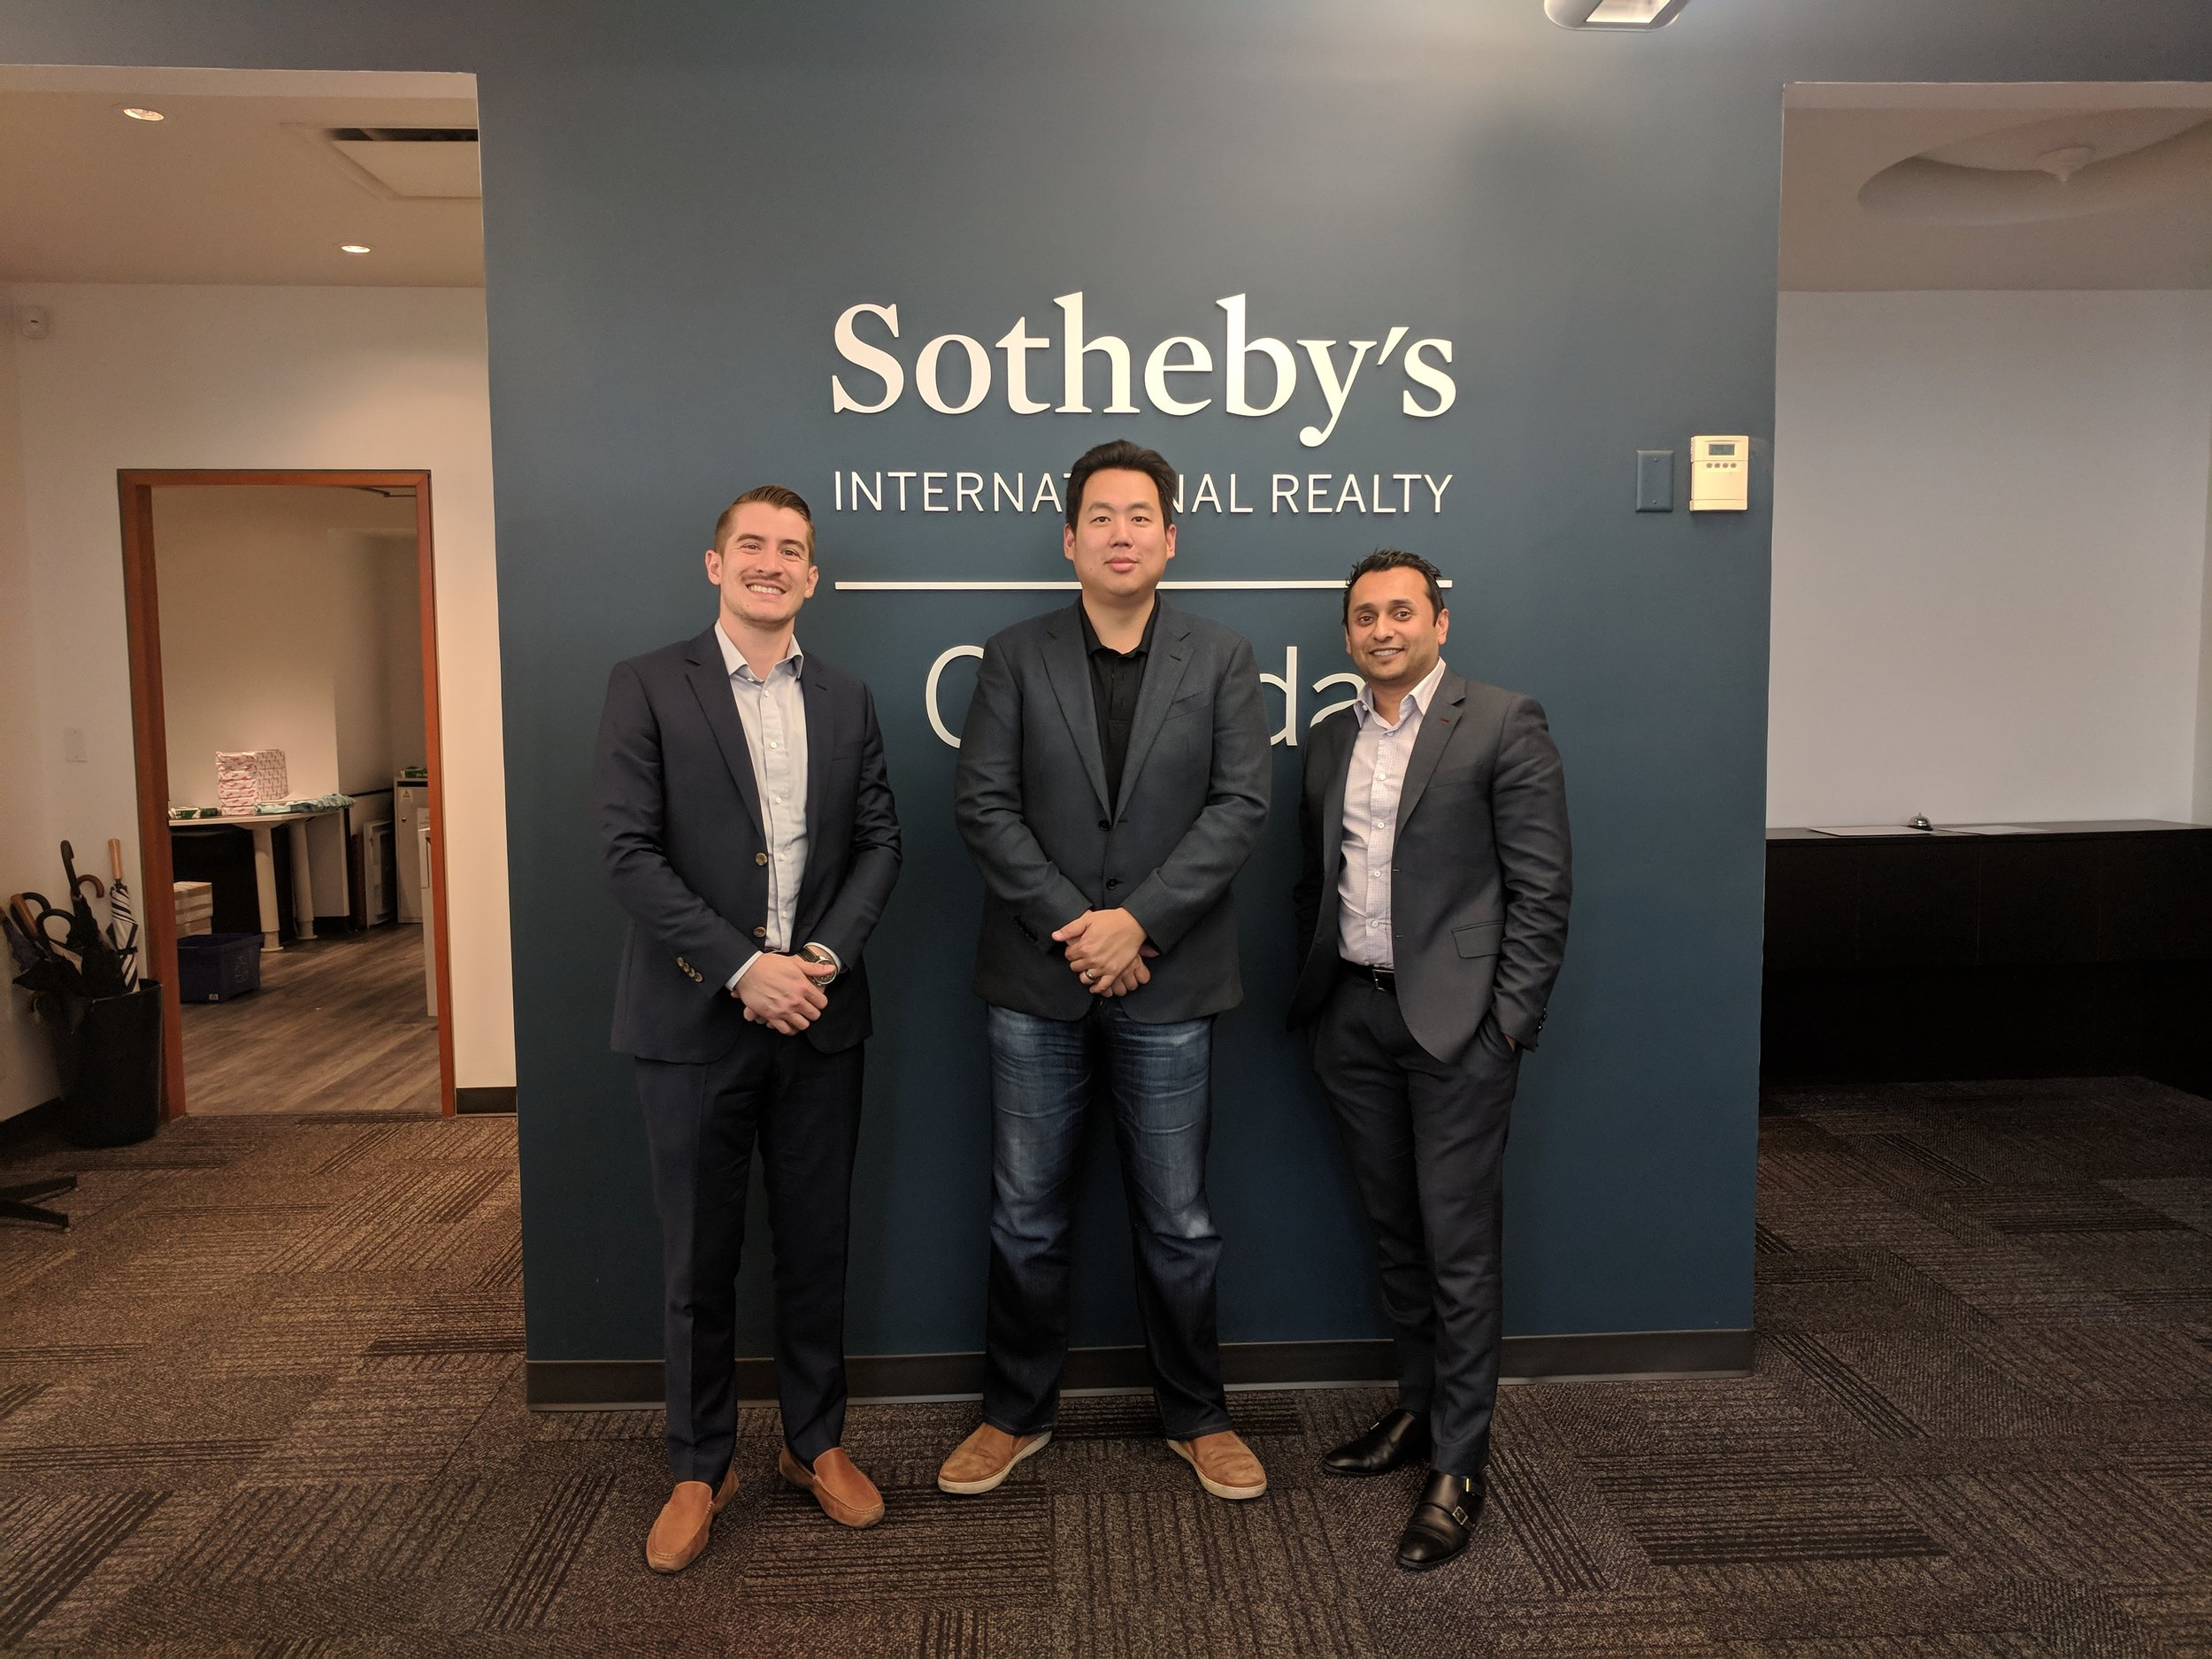 Chang (center) pictured with affiliates from Sotheby's International Realty Canada including Karim (right).